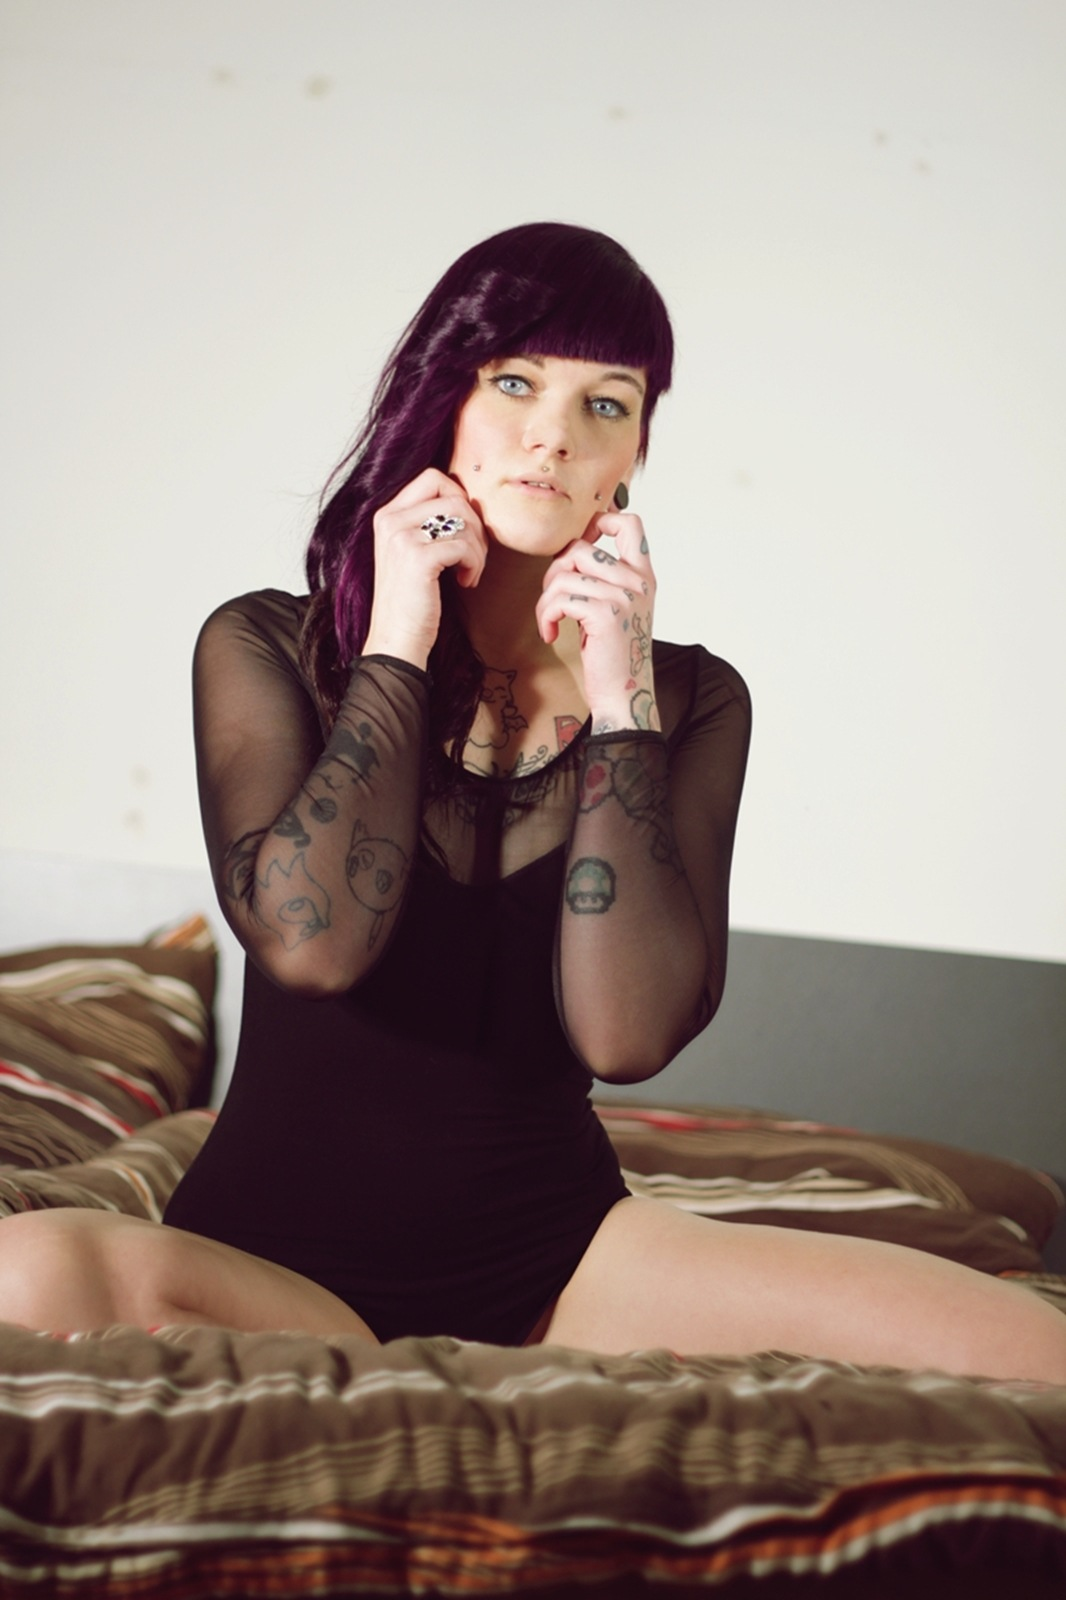 Allis Suicide Nude evevalentine – starting naked – suicidepics